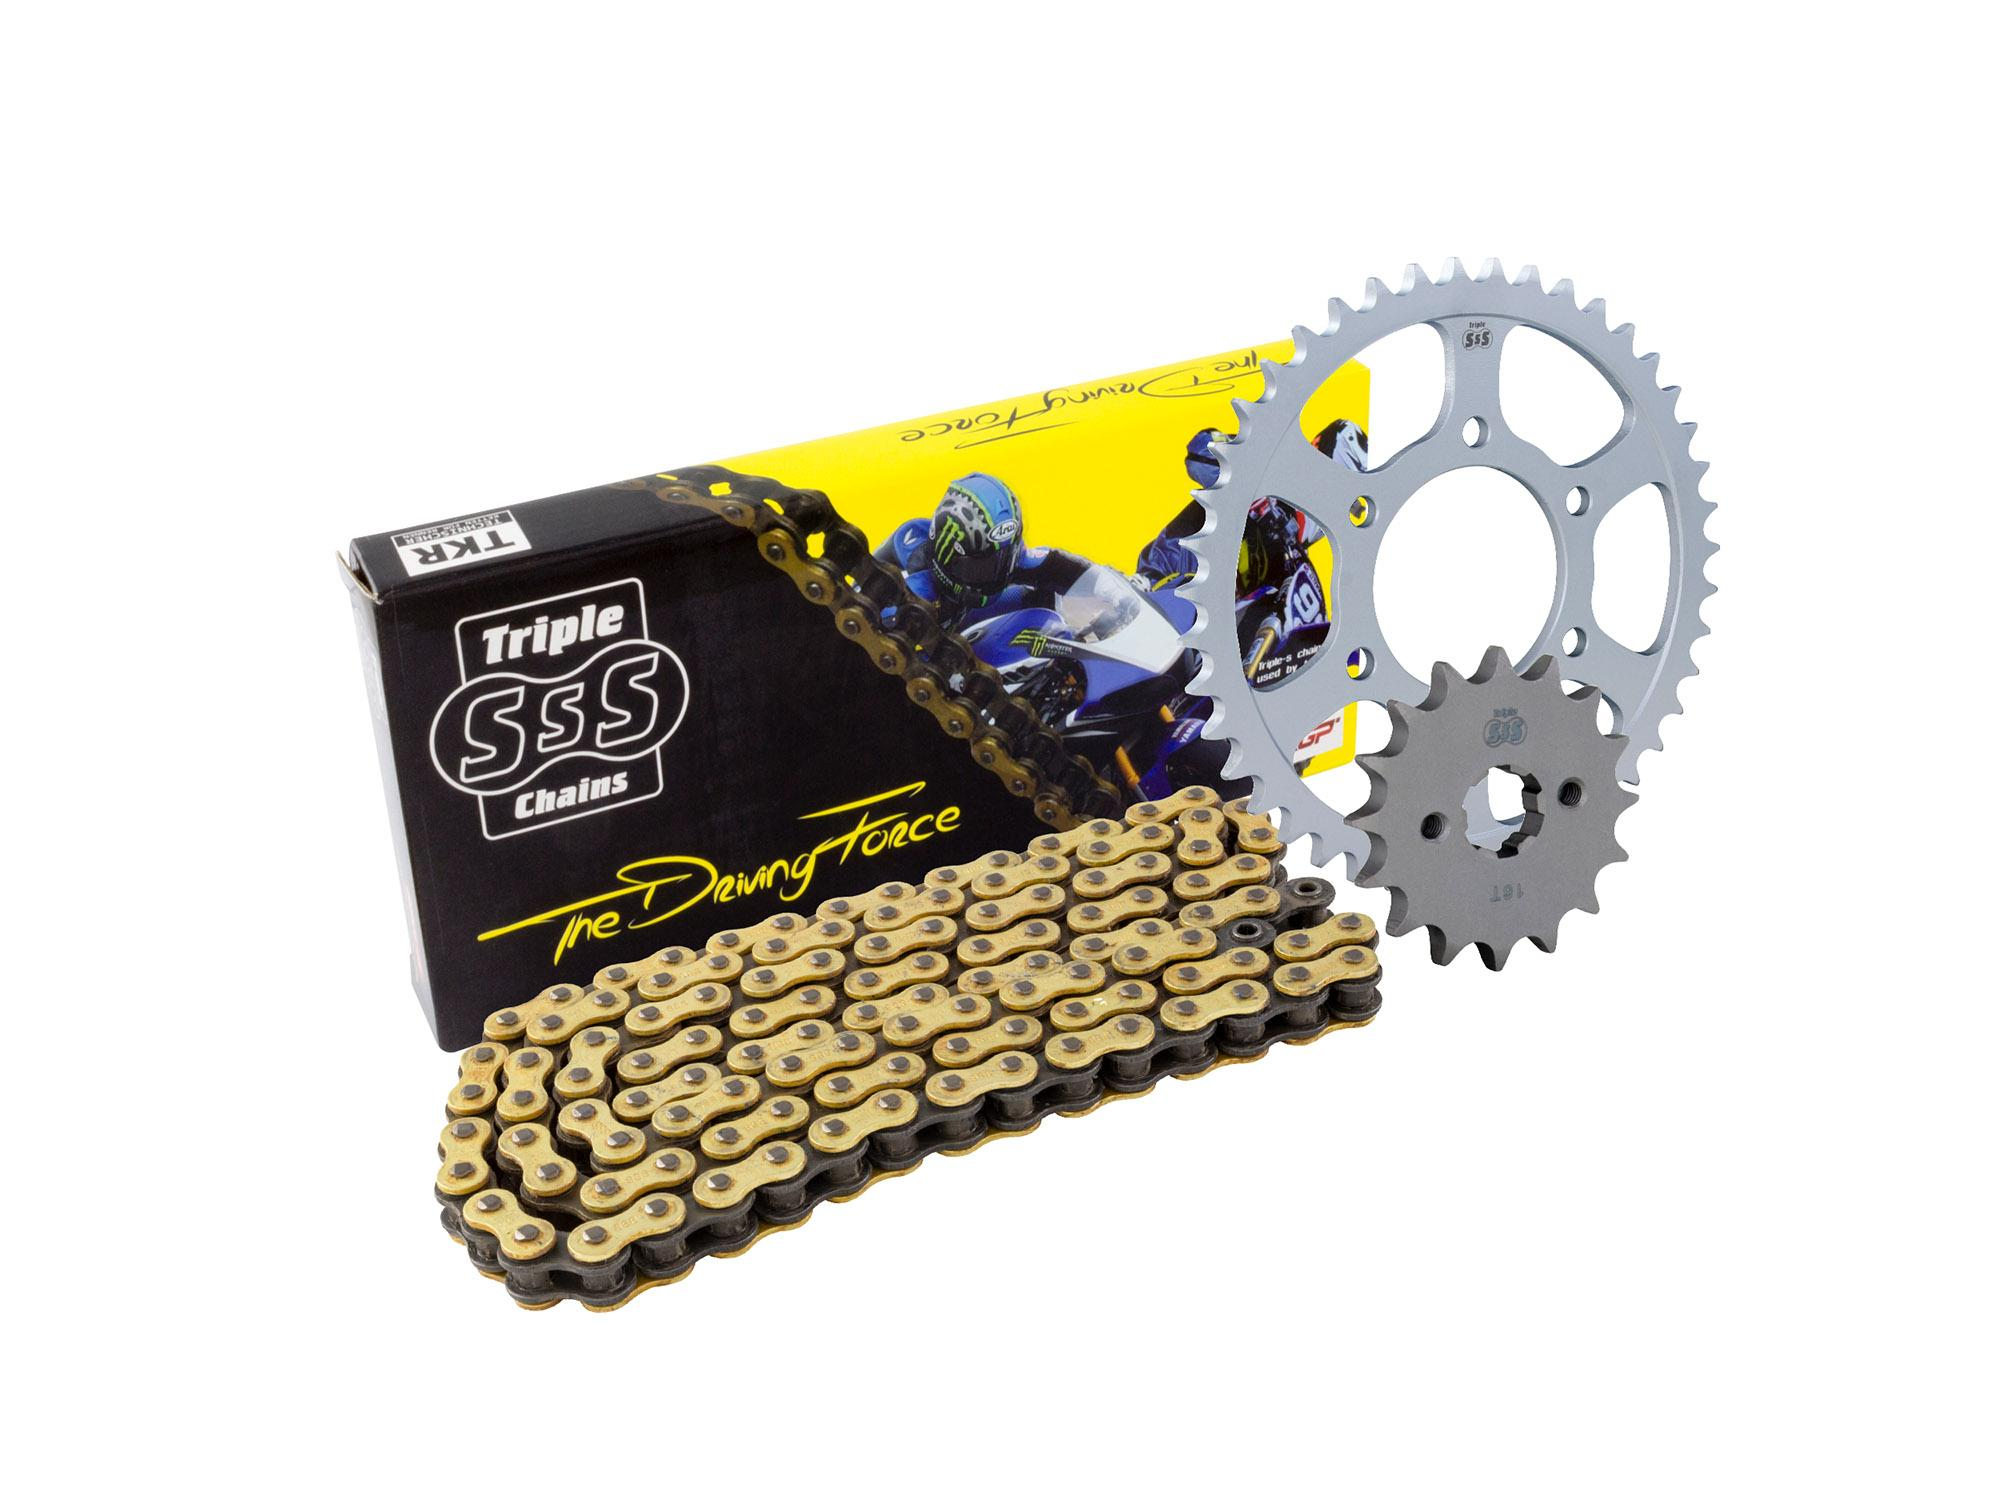 Yamaha XJR1300 04-06 Chain & Sprocket Kit: 17T Front, 39T Rear, HD O-Ring Gold Chain 530H 112 Link